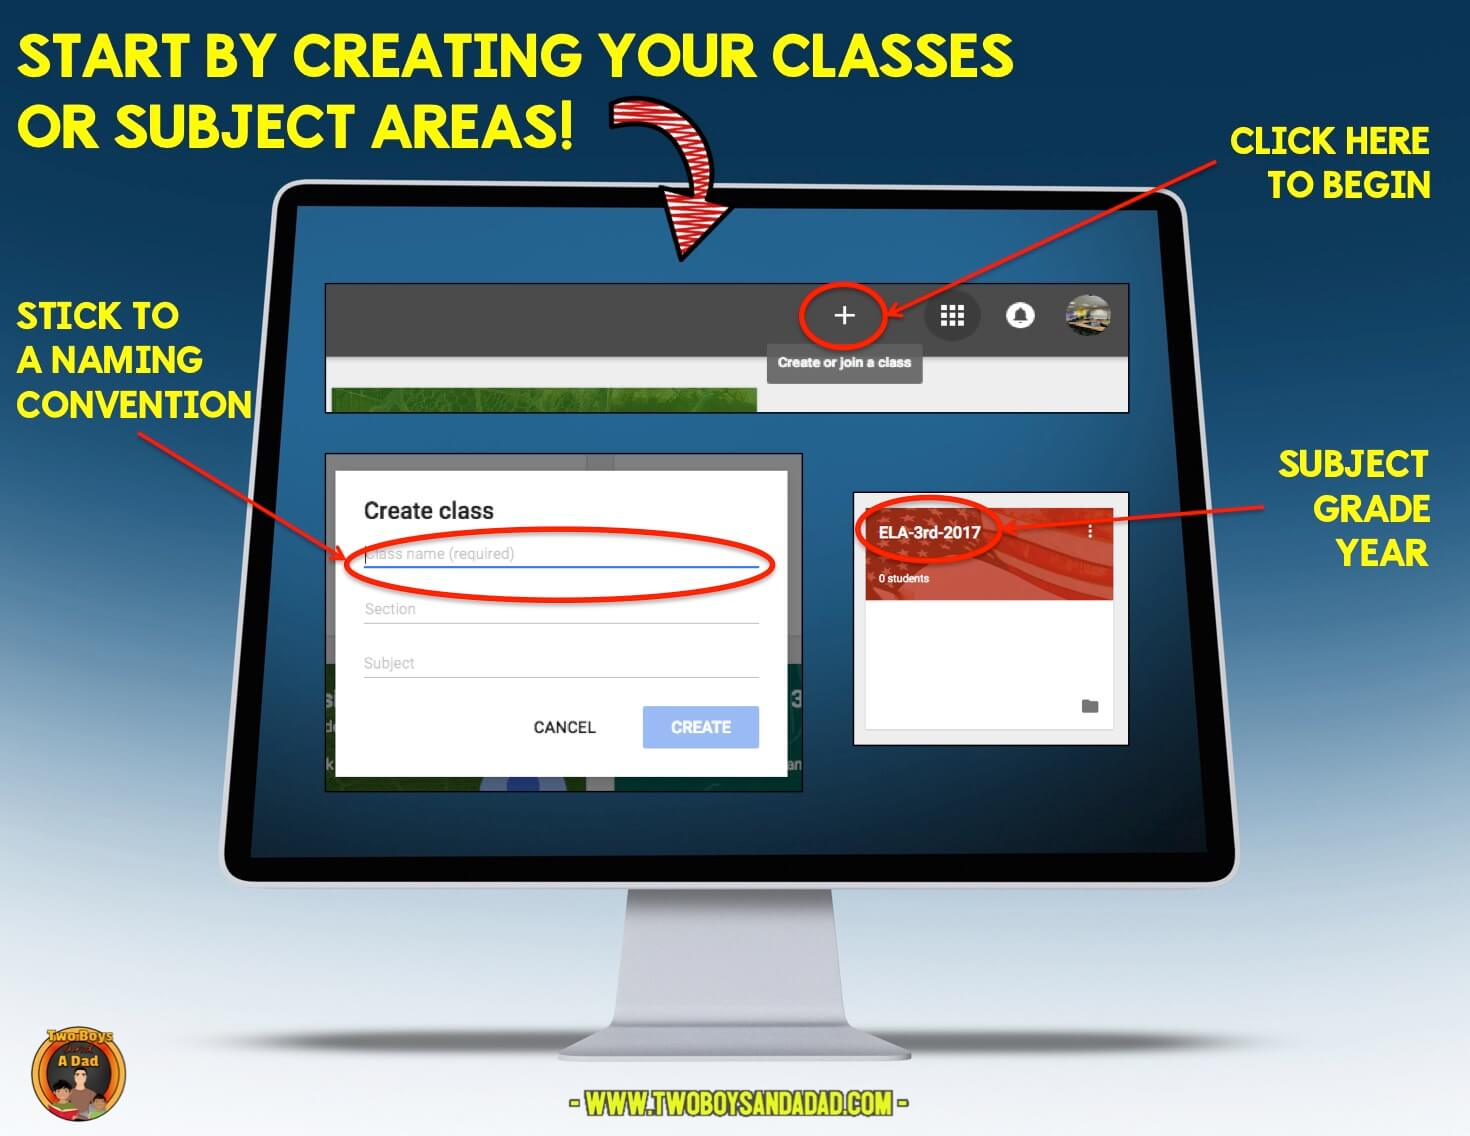 First step is to create a new class in Google Classroom